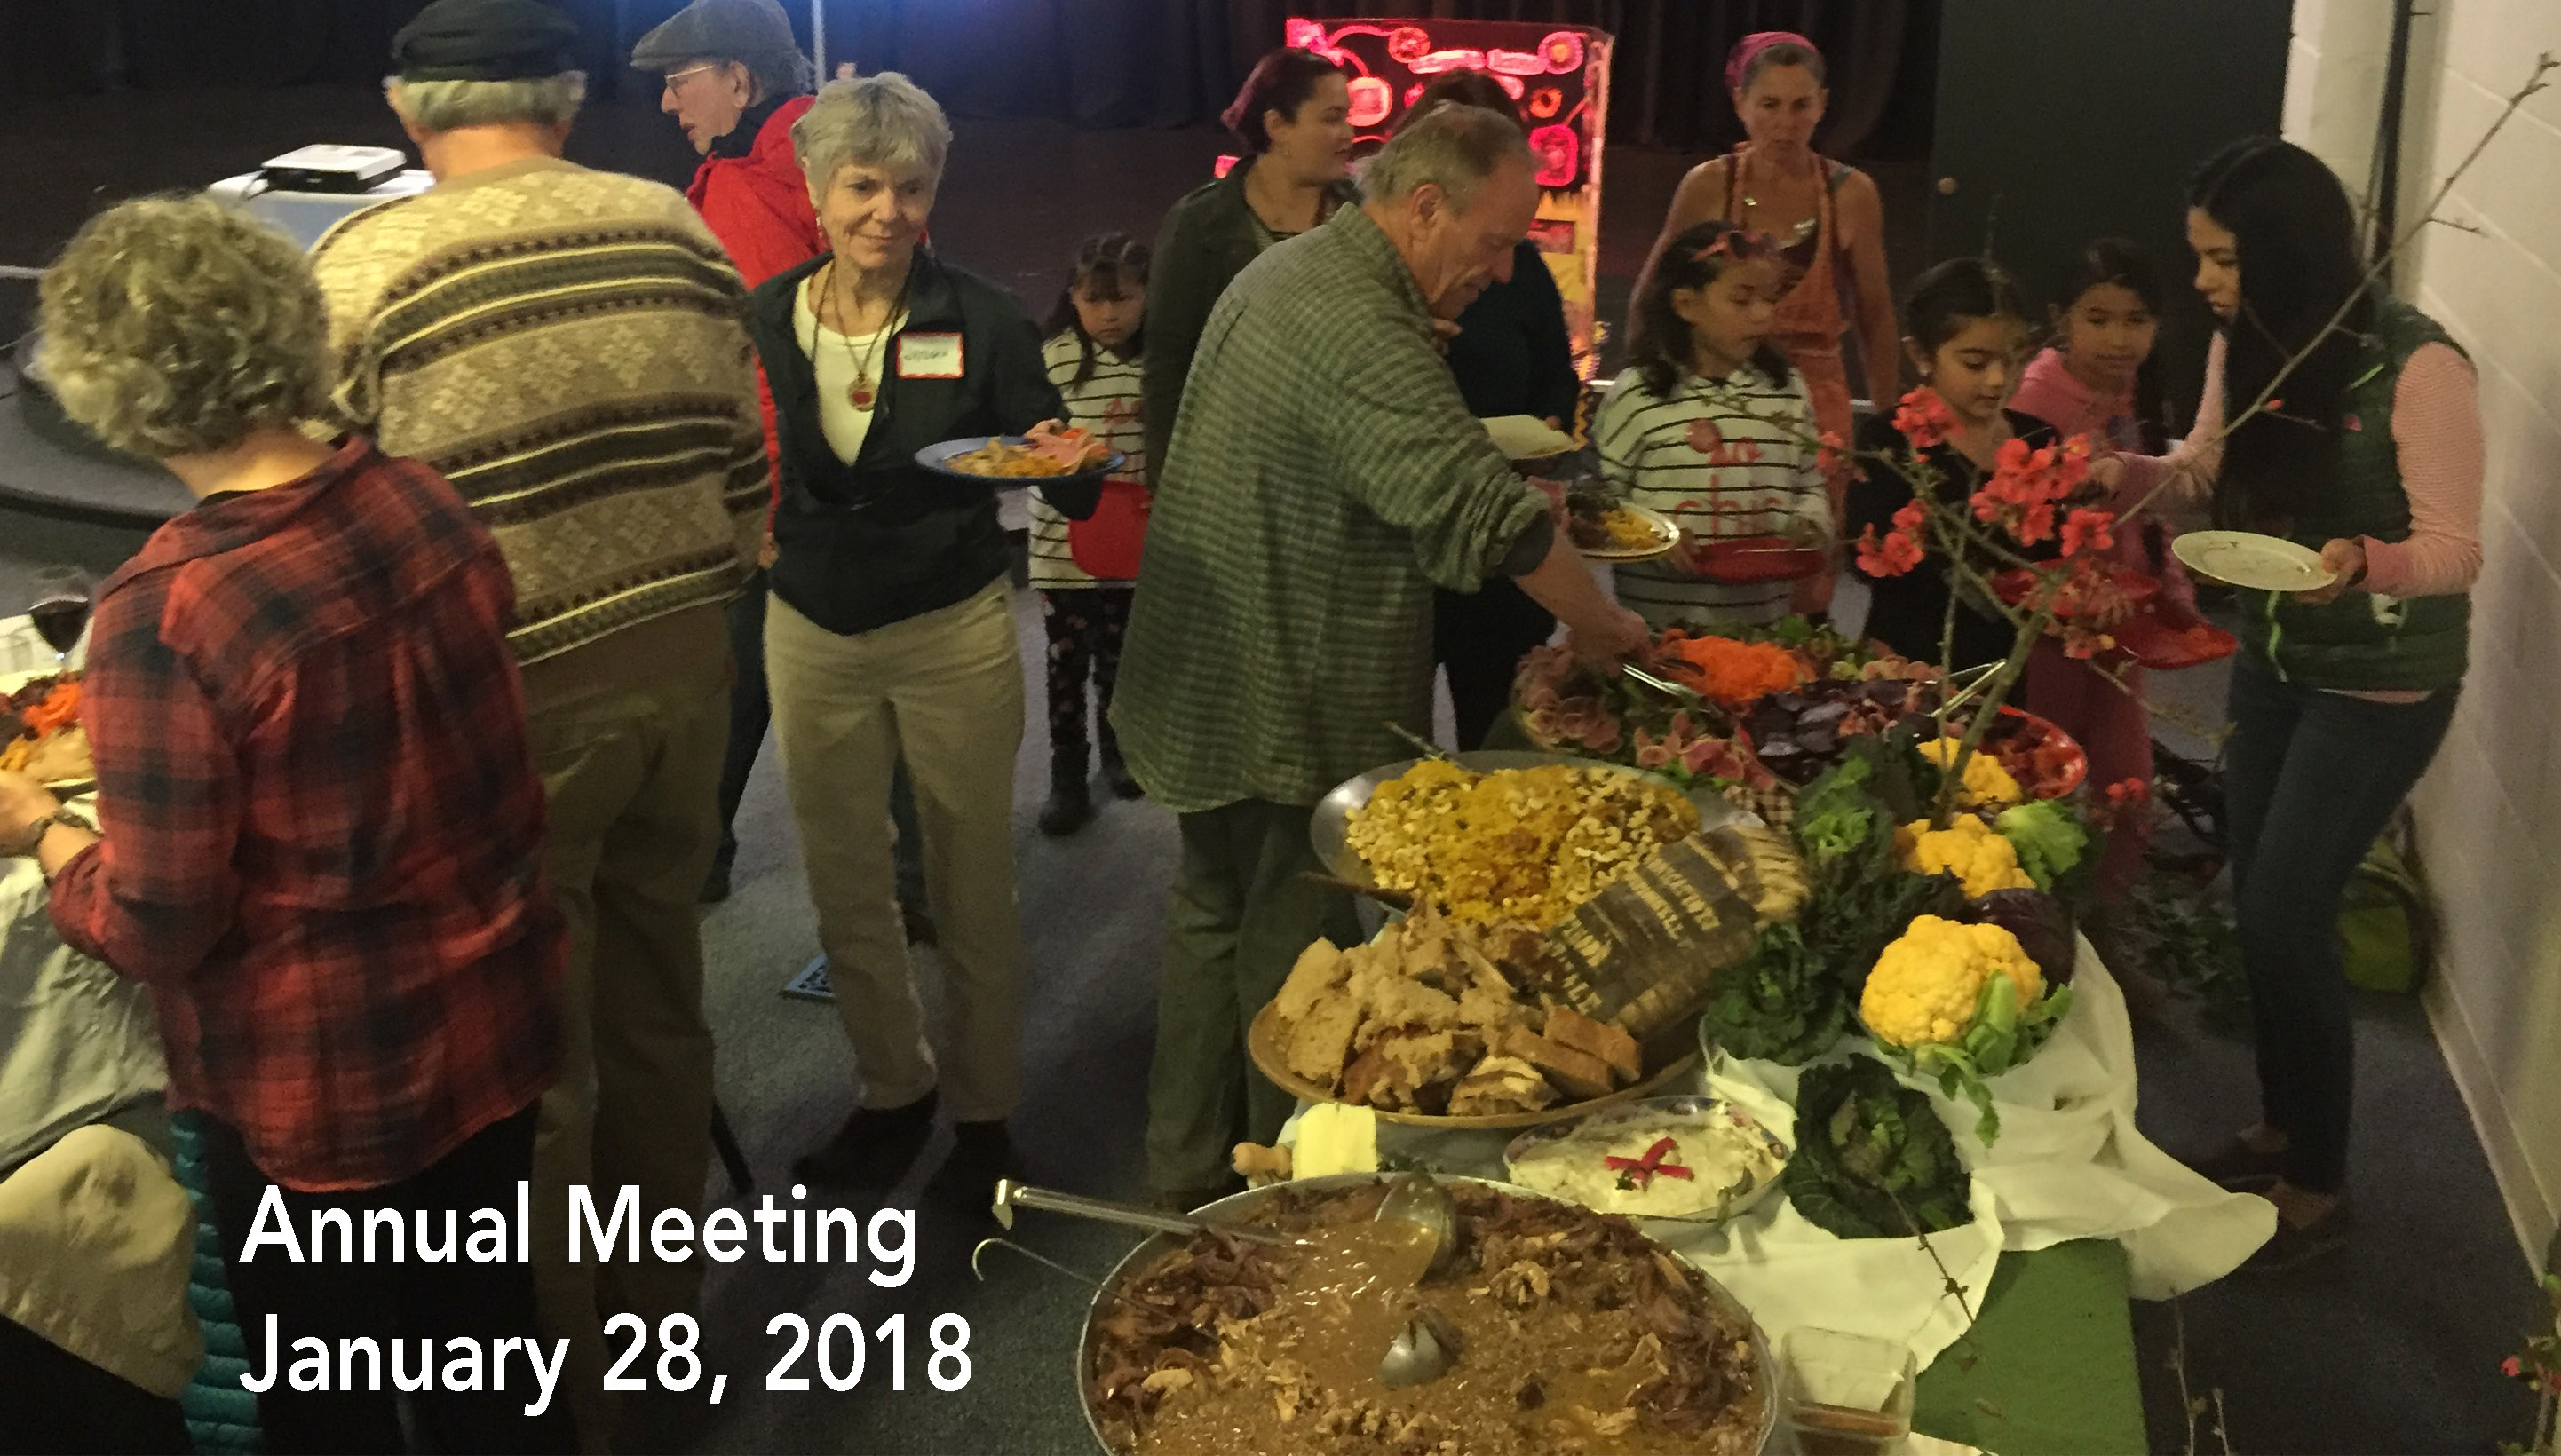 Slow Food Russian River Annual Meeting, Jnury 28. 2018